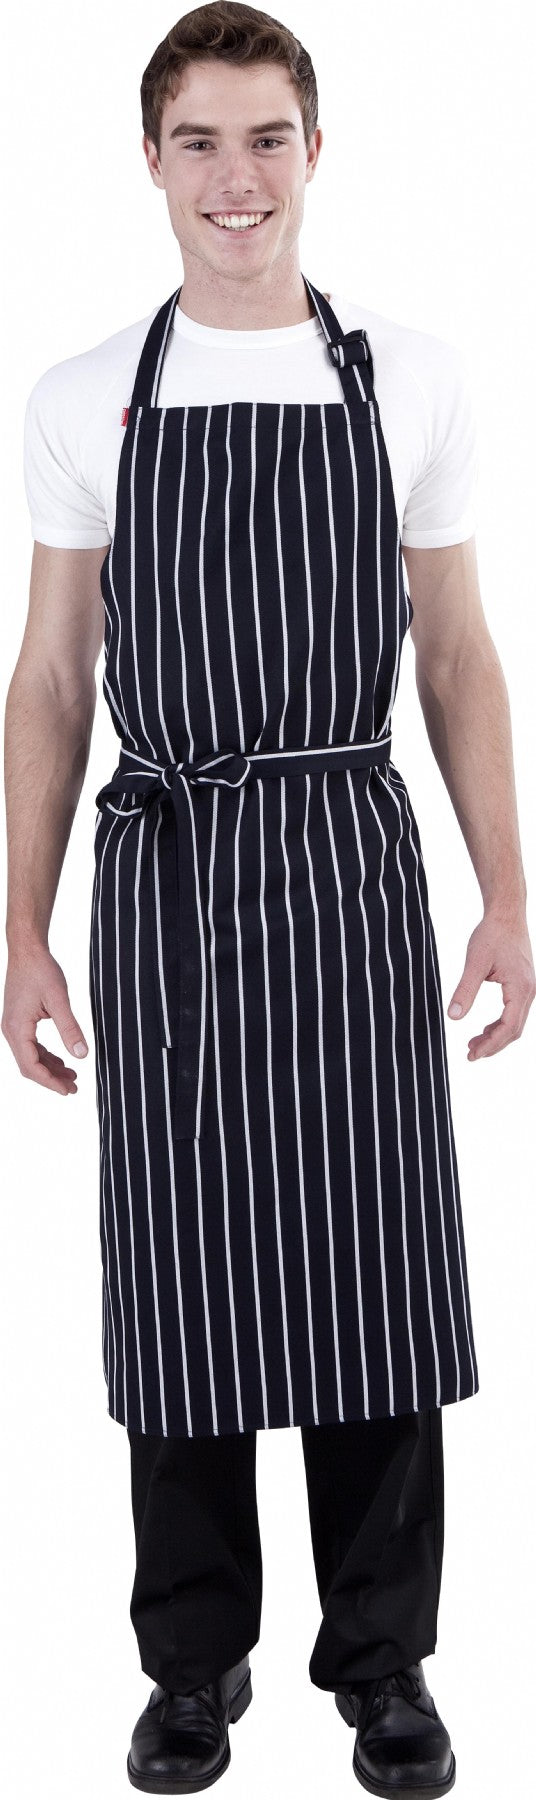 UK Bib FULL Length Chefs Bib Apron (Adjustable Neck)